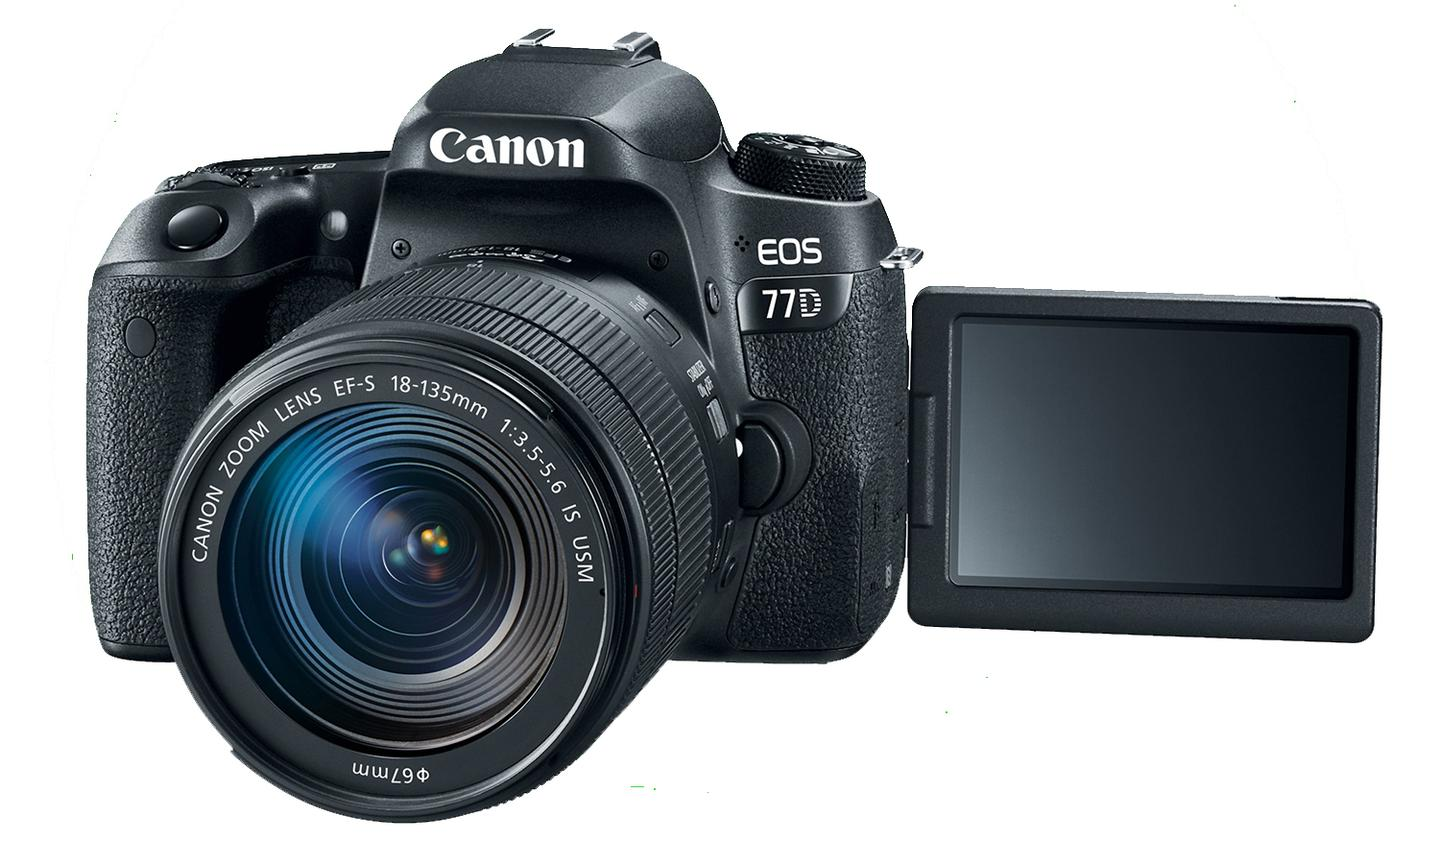 The Canon EOS 77D features a 3-inch vari-angle LCD monitor